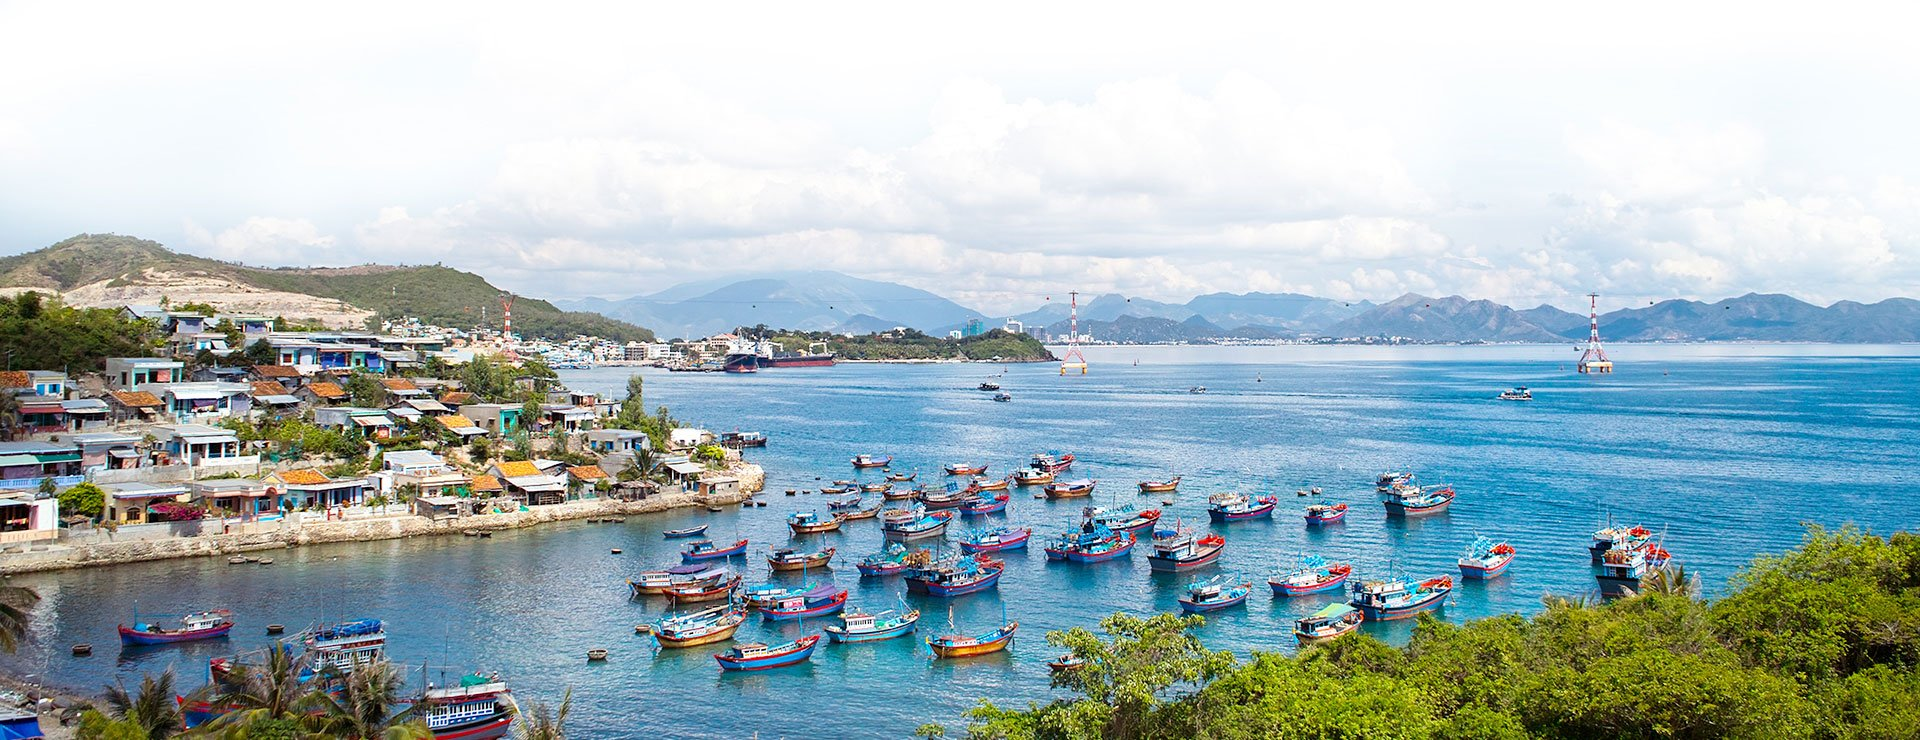 Vietnam – From a Land of War to a Wonderful Holiday Destination